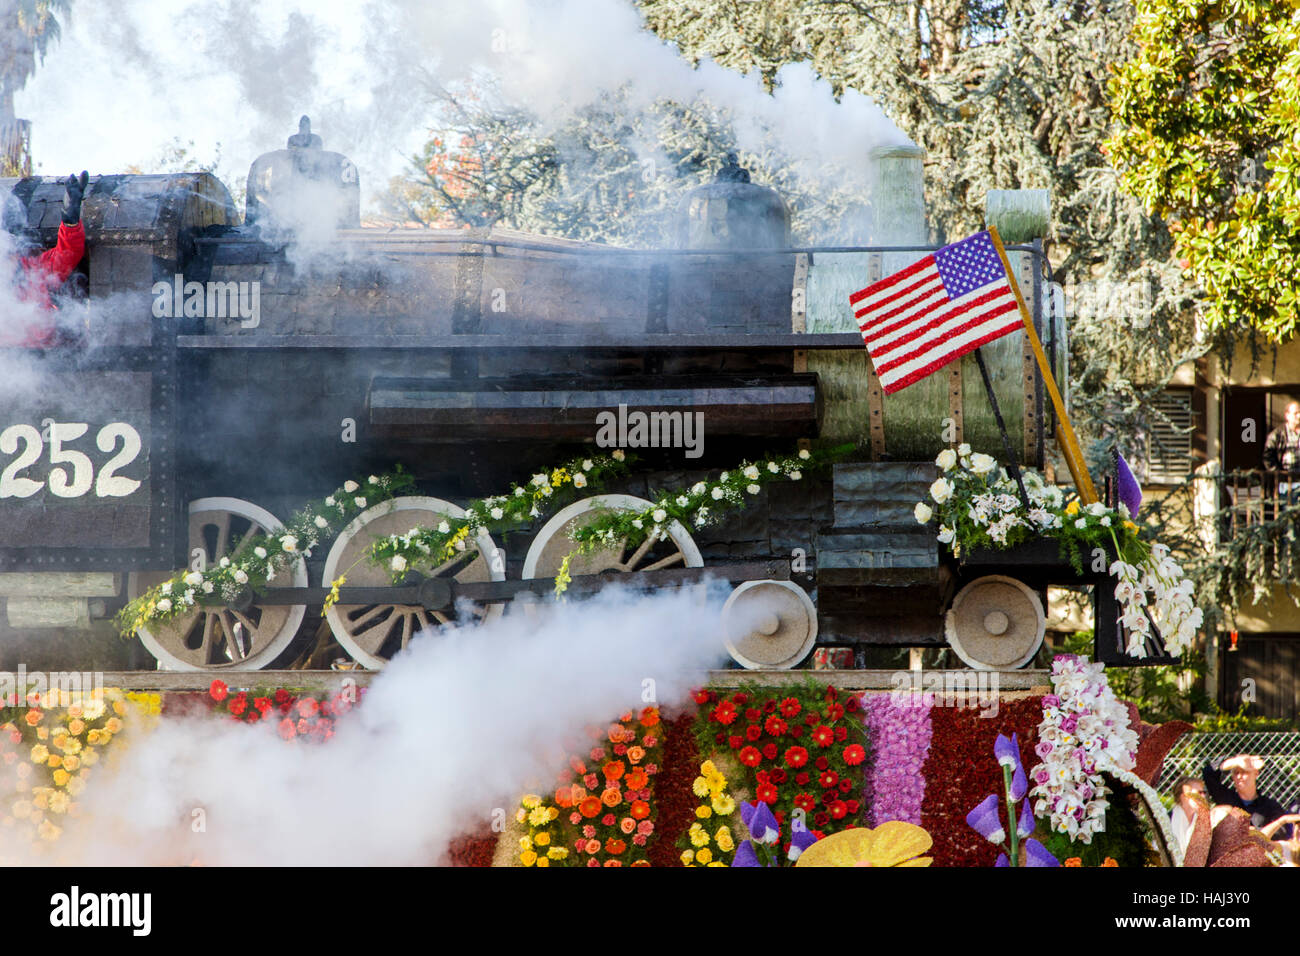 Float decorated like steam locomotive with flowers in the annual New Years Day Rose Bowl Parade, Pasadena, California, Stock Photo